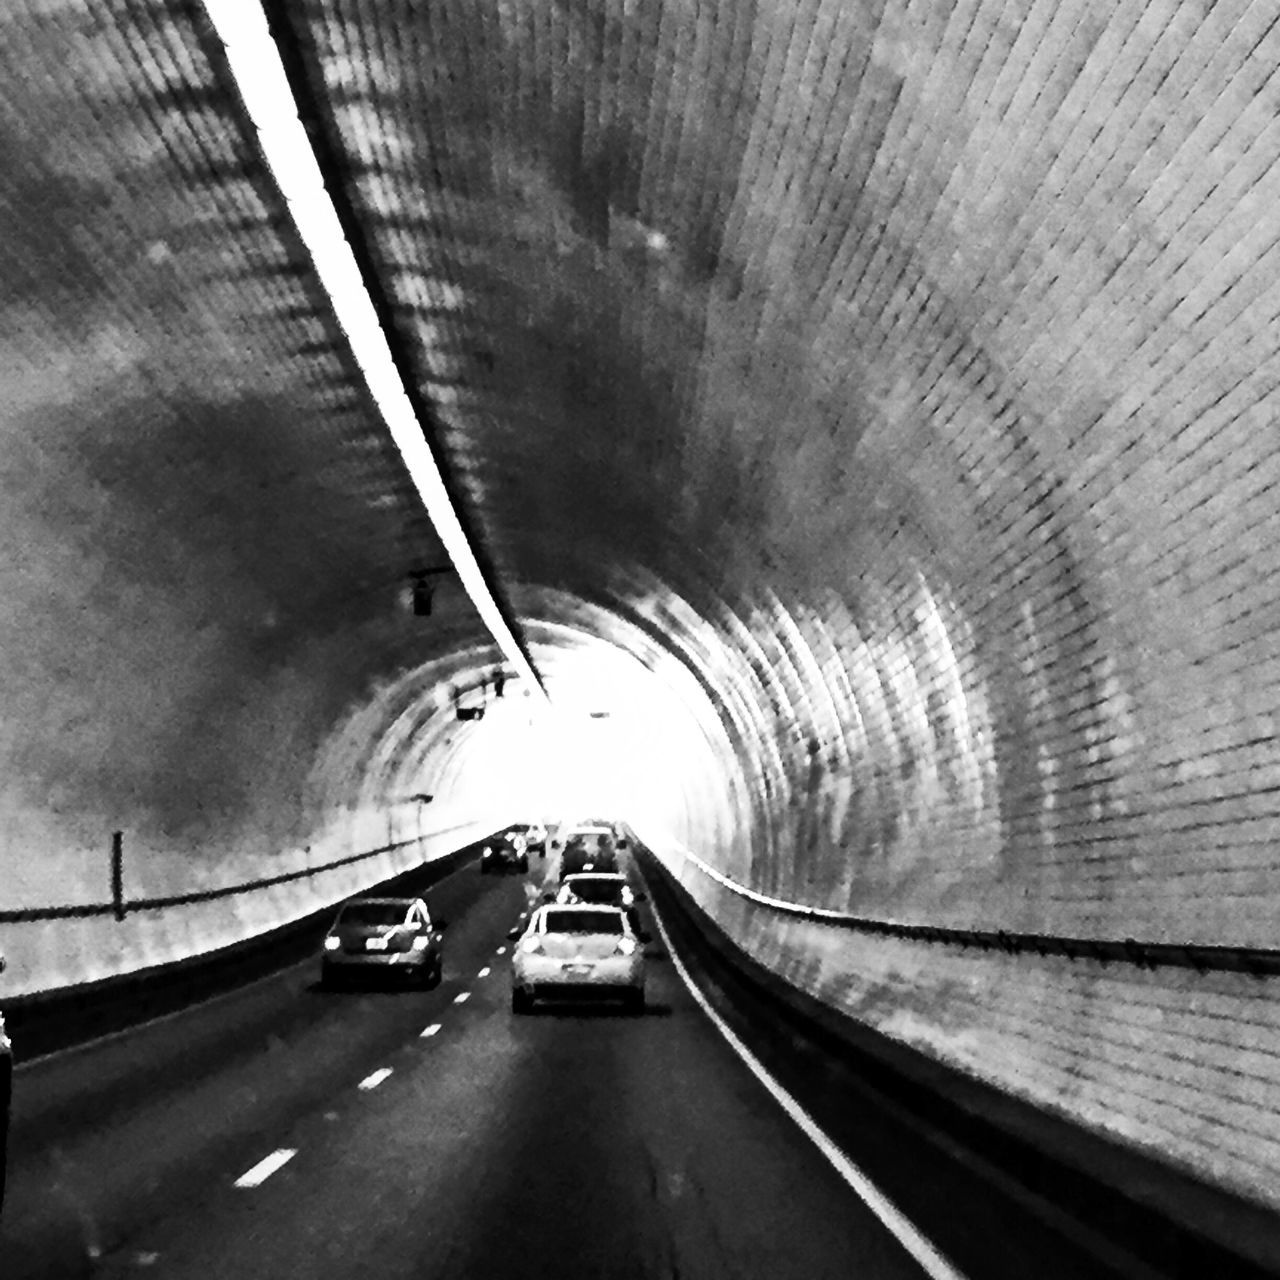 tunnel, transportation, road, the way forward, diminishing perspective, built structure, car, indoors, arch, land vehicle, light at the end of the tunnel, architecture, illuminated, mode of transport, bridge - man made structure, curve, day, no people, city, parking garage